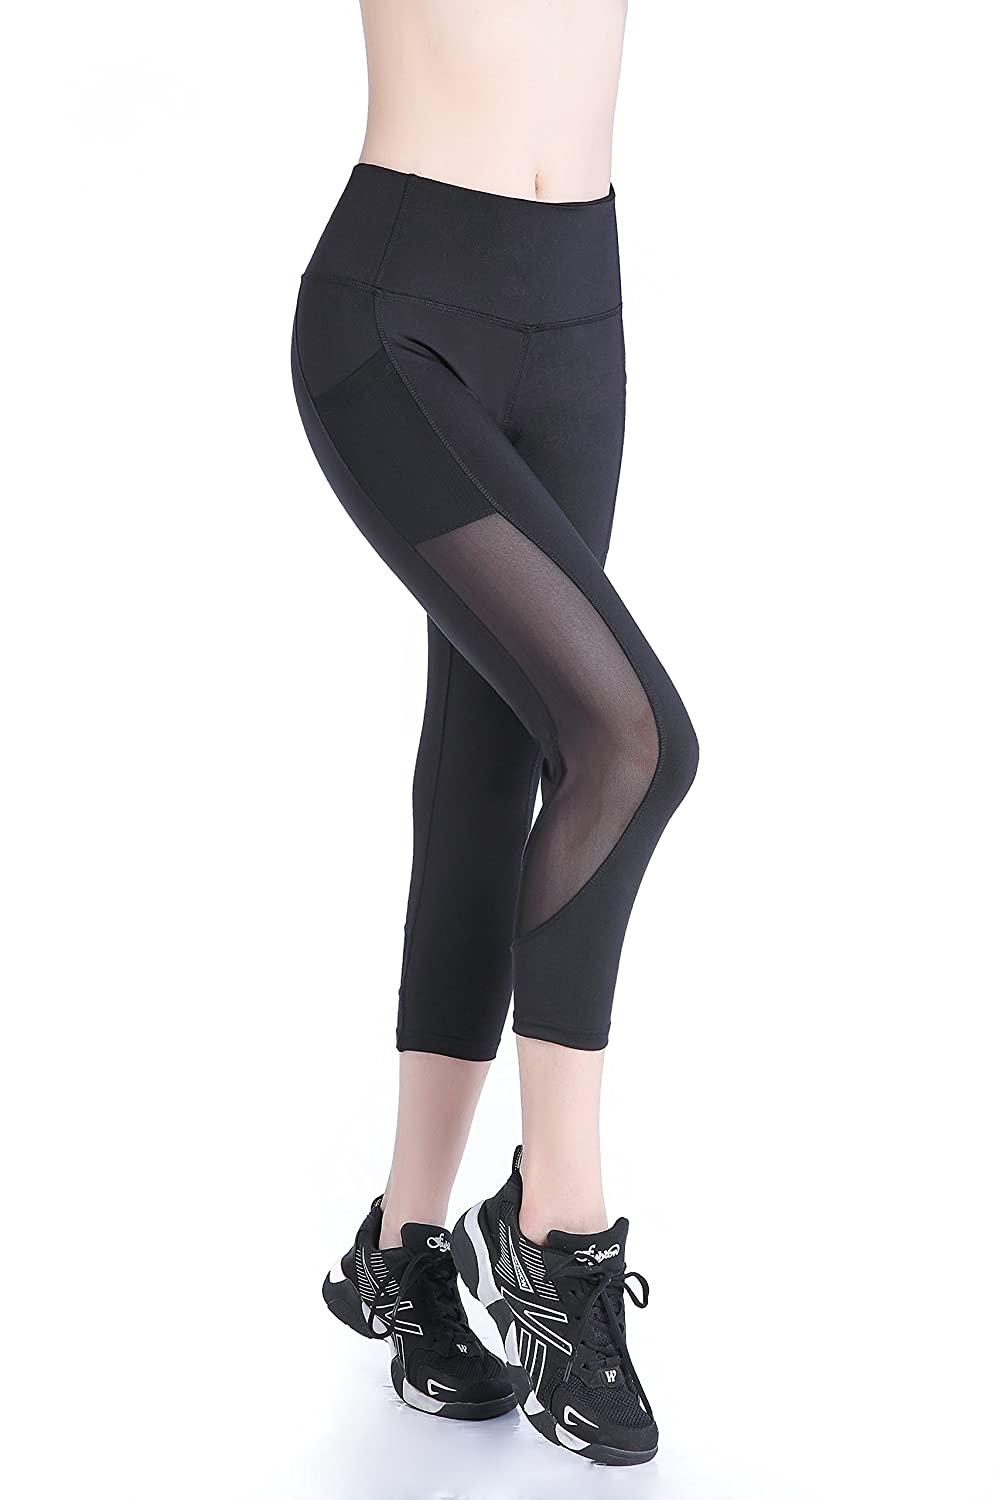 292e4473dc1c9 ... keys, credit cards and other small items,womens excersize leggings side  pocket leggings, capri running tights women, sports pants for women is  important